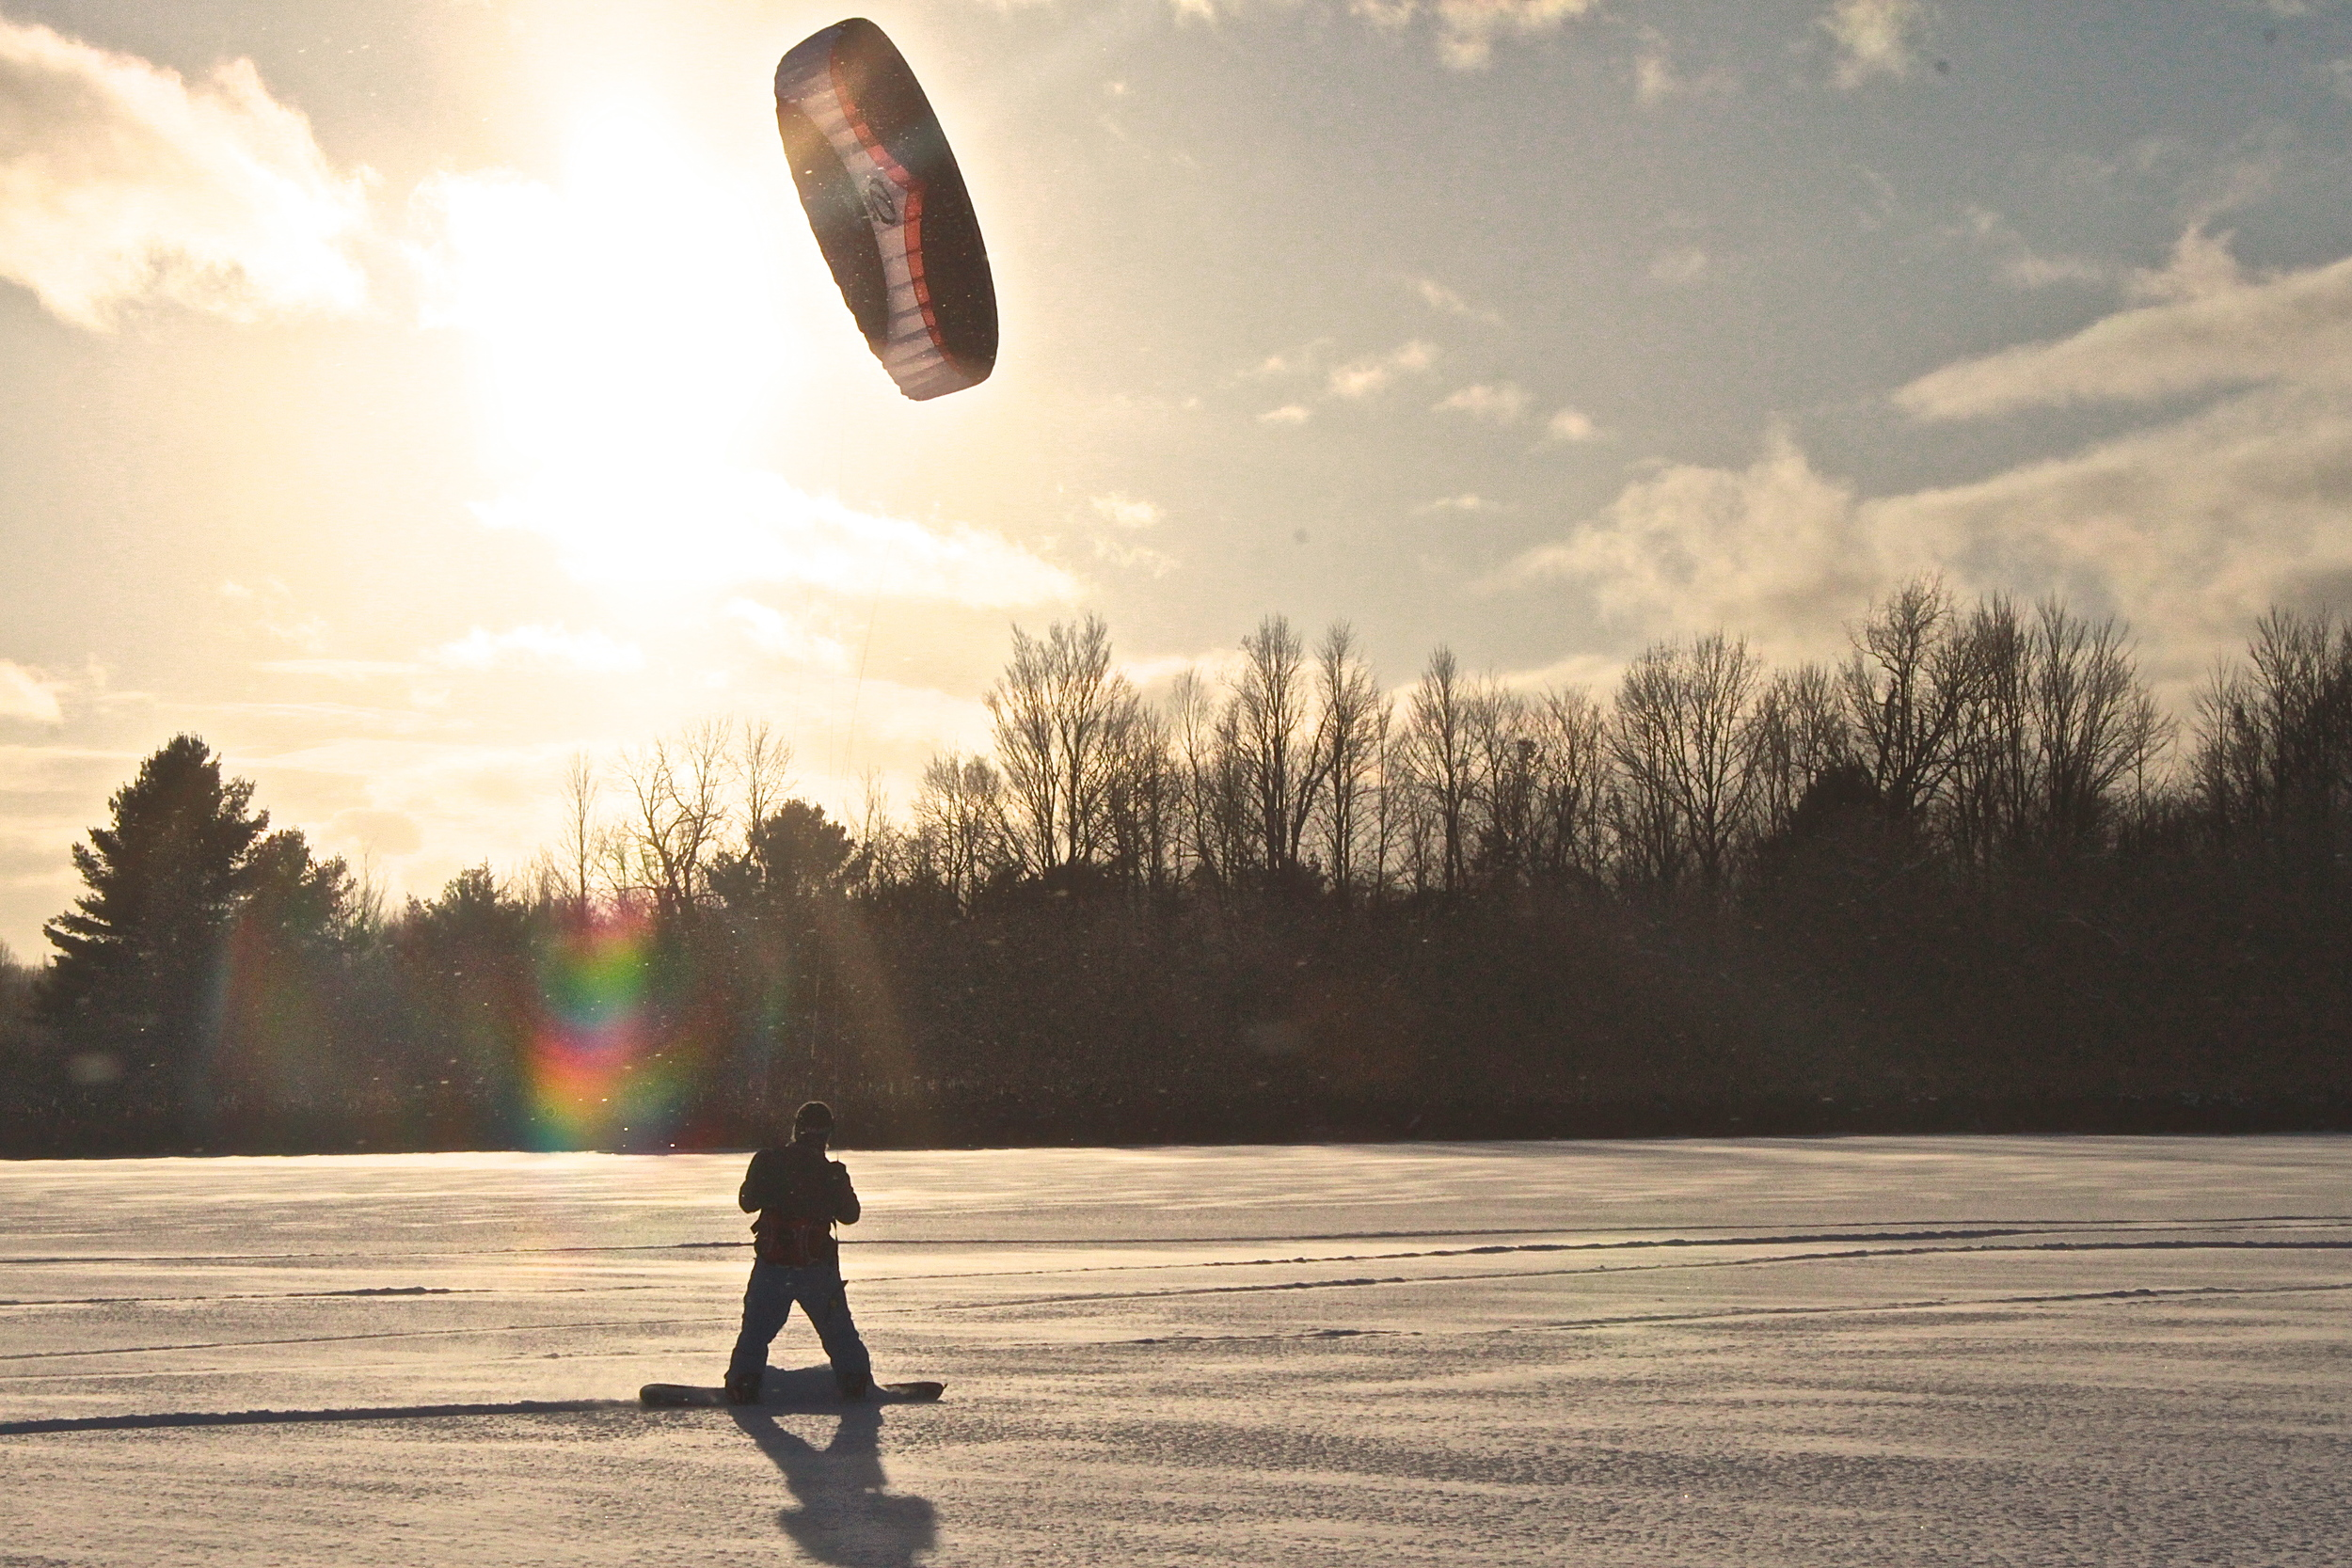 Snow Kiting on Shelburne Pond